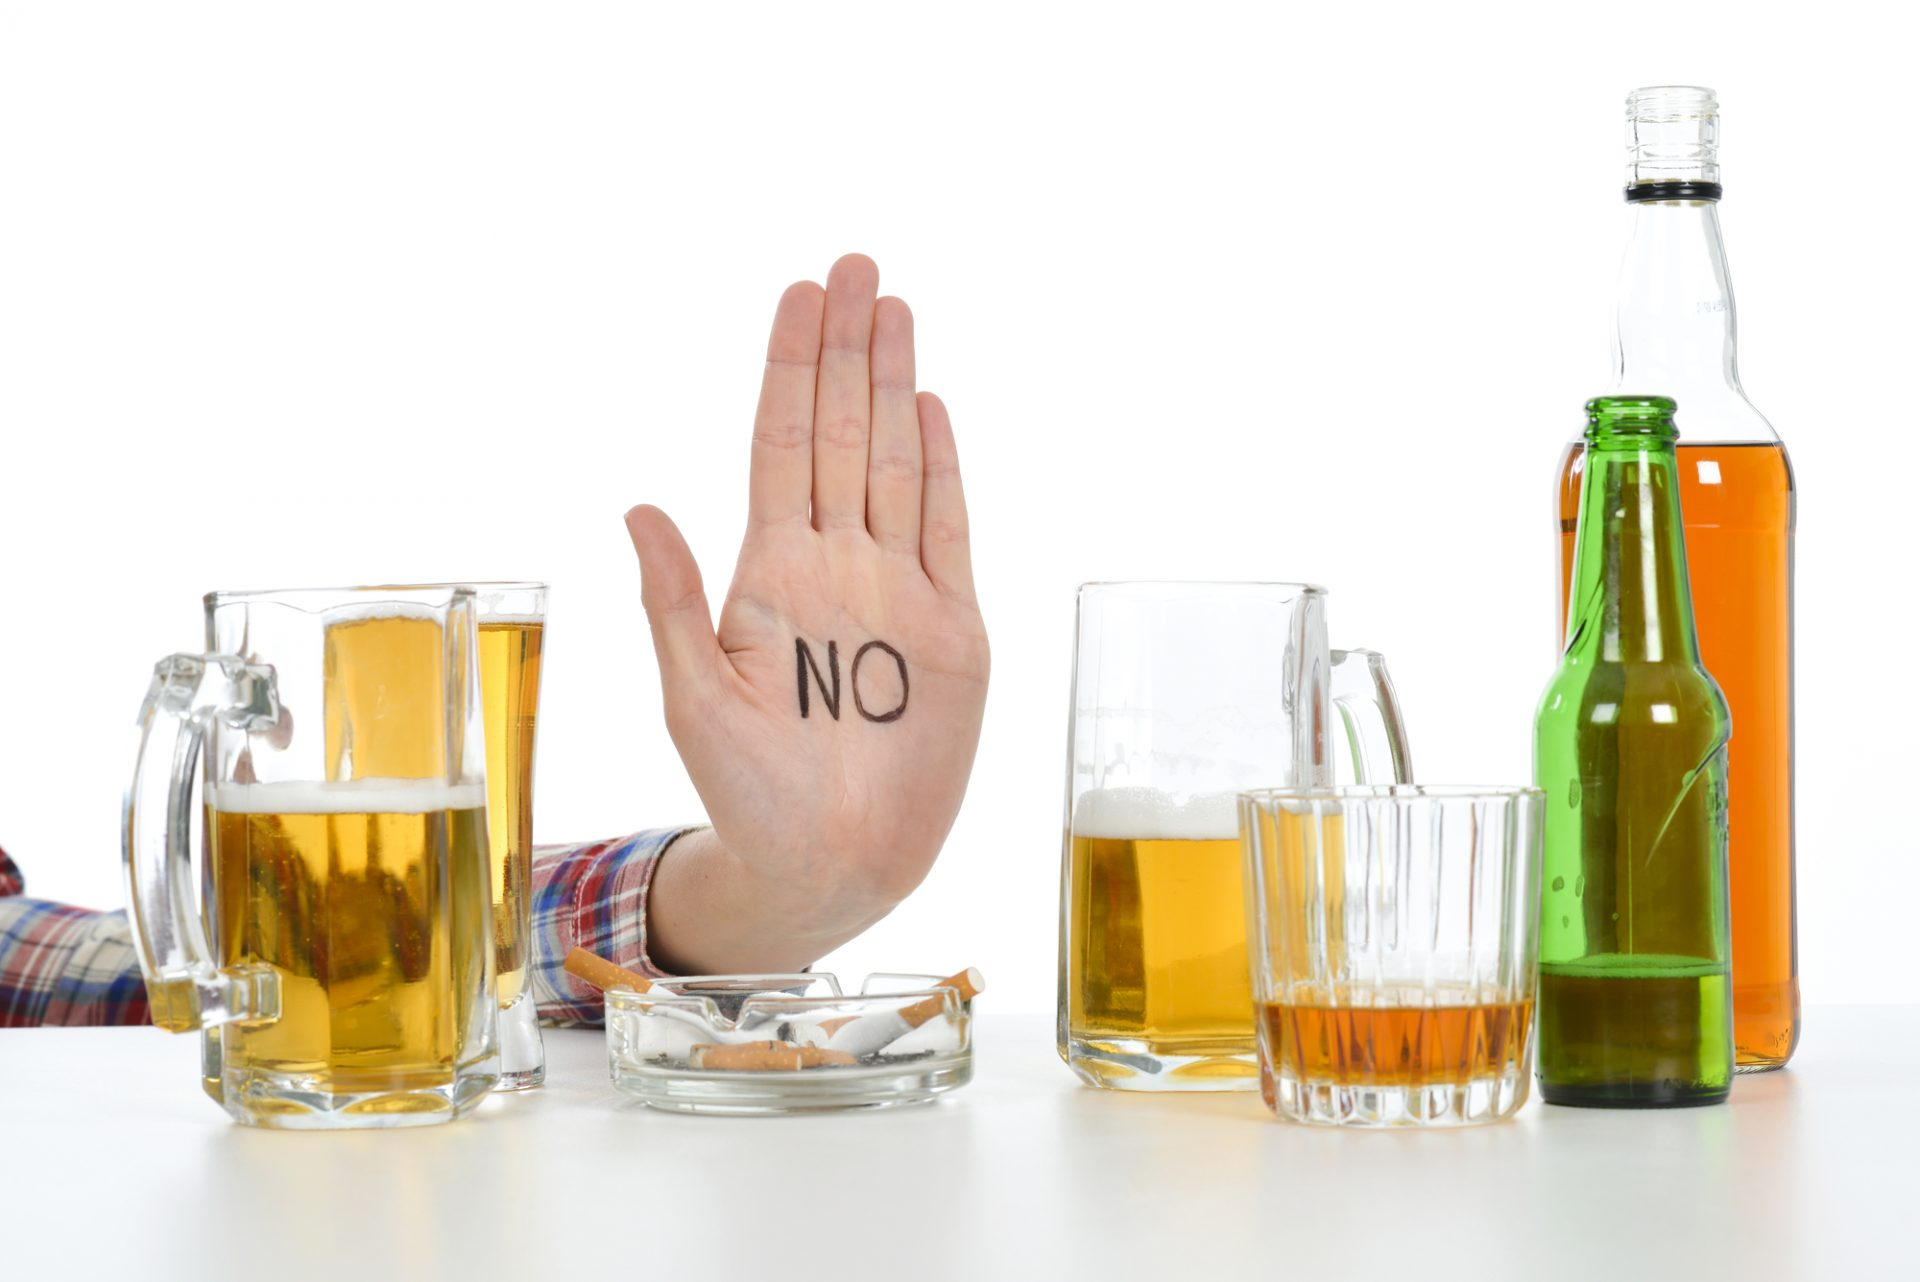 WHere can I find the best substance abuse treatment centers orlando?